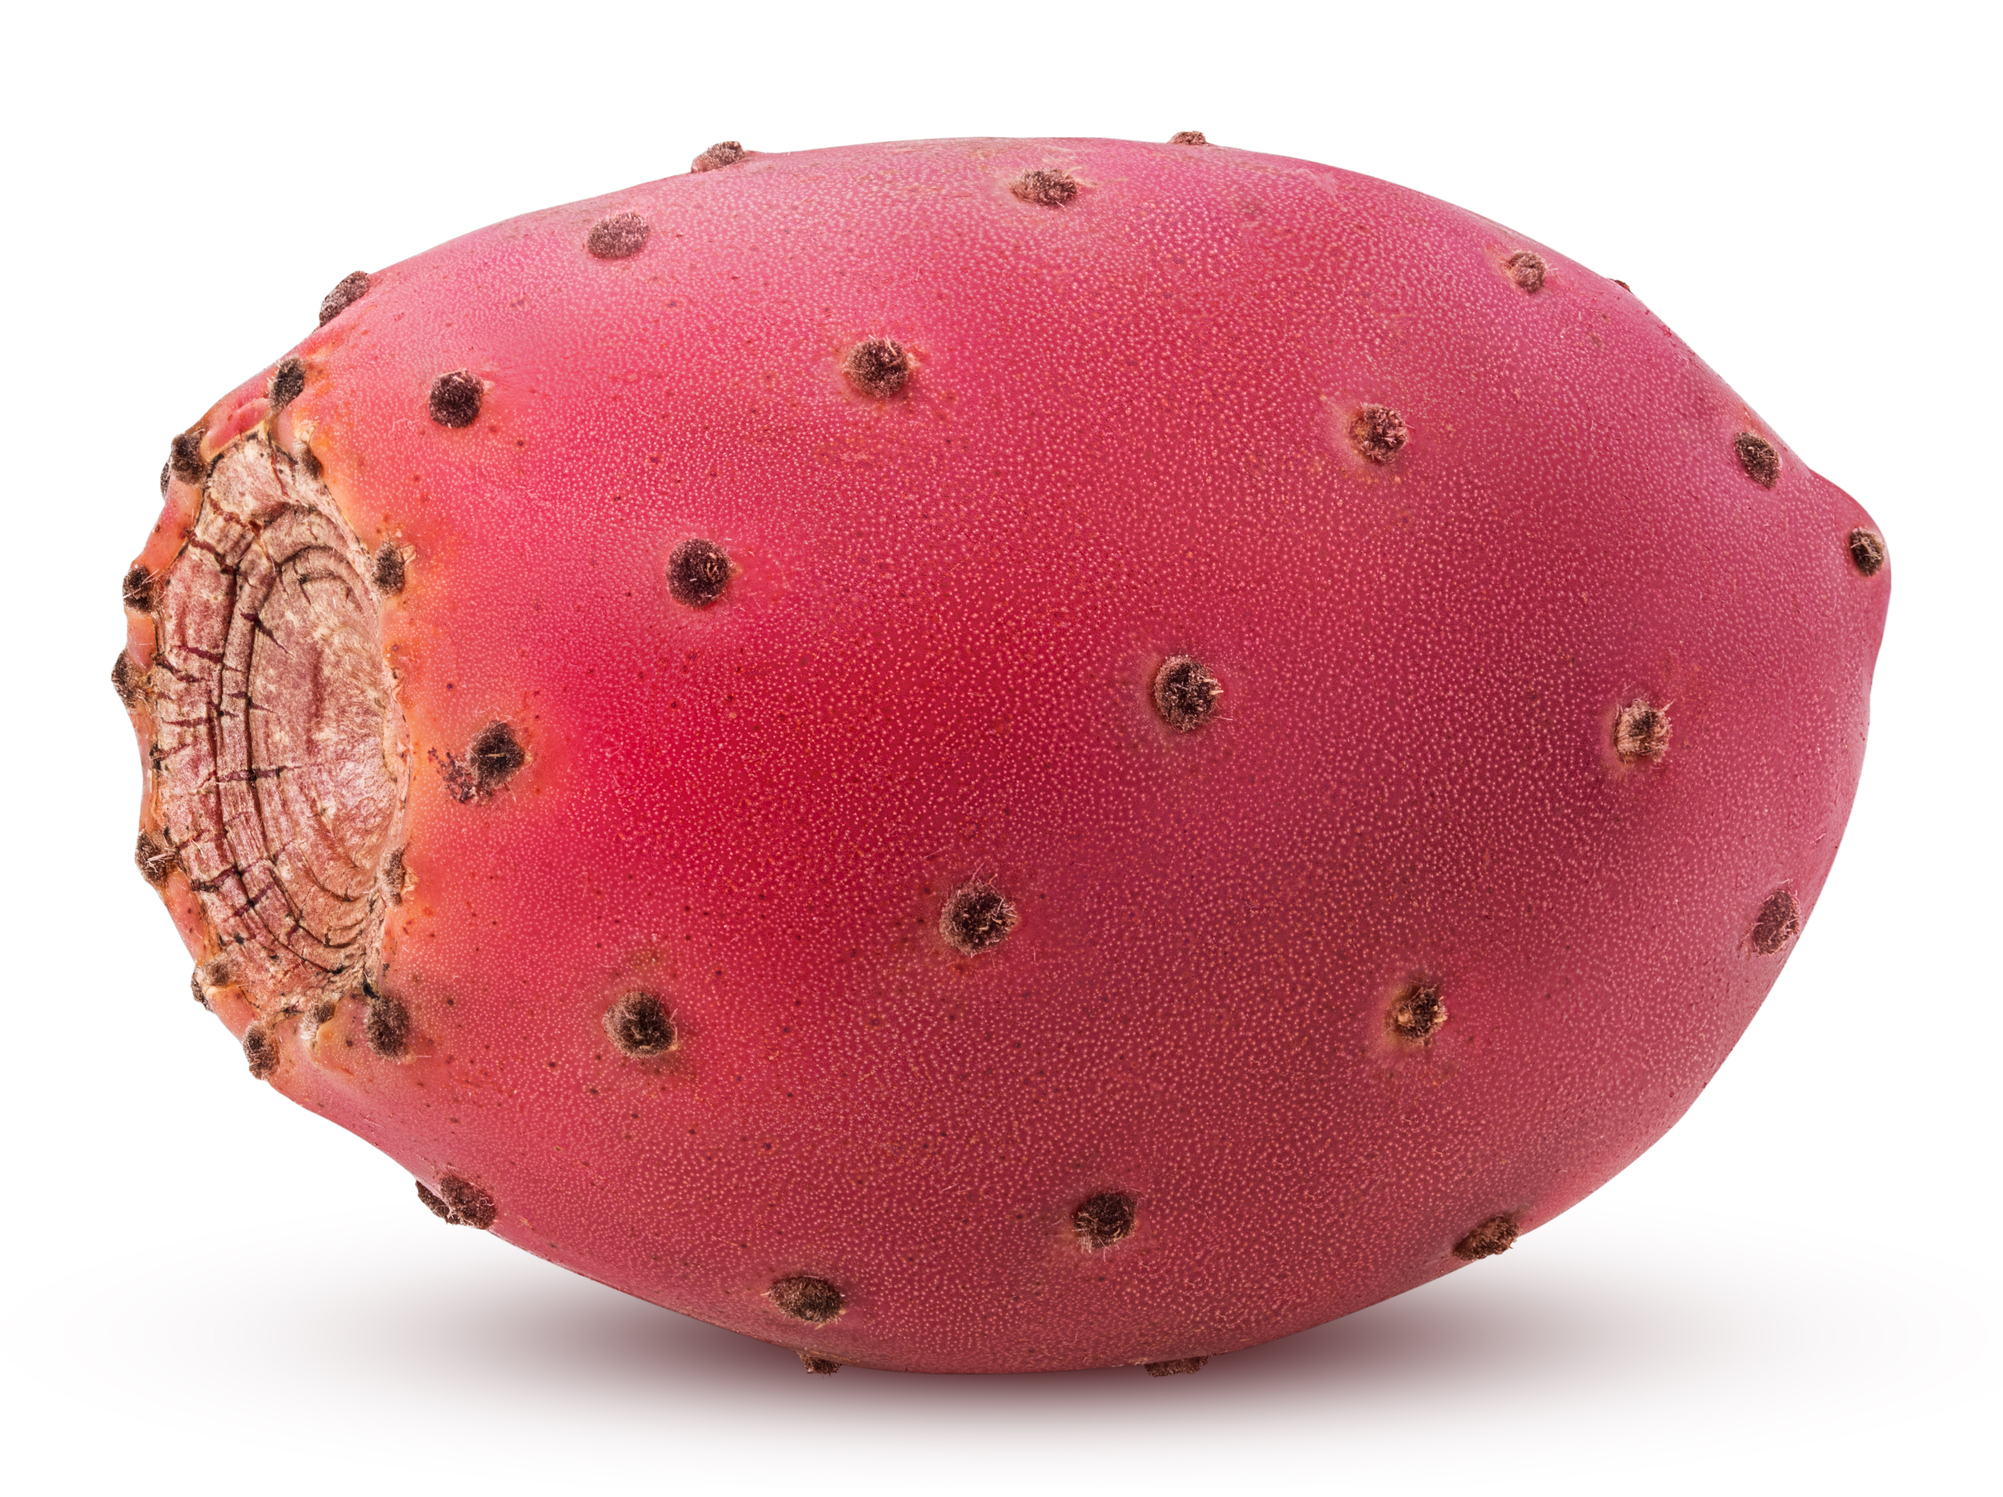 Red Cactus Pears